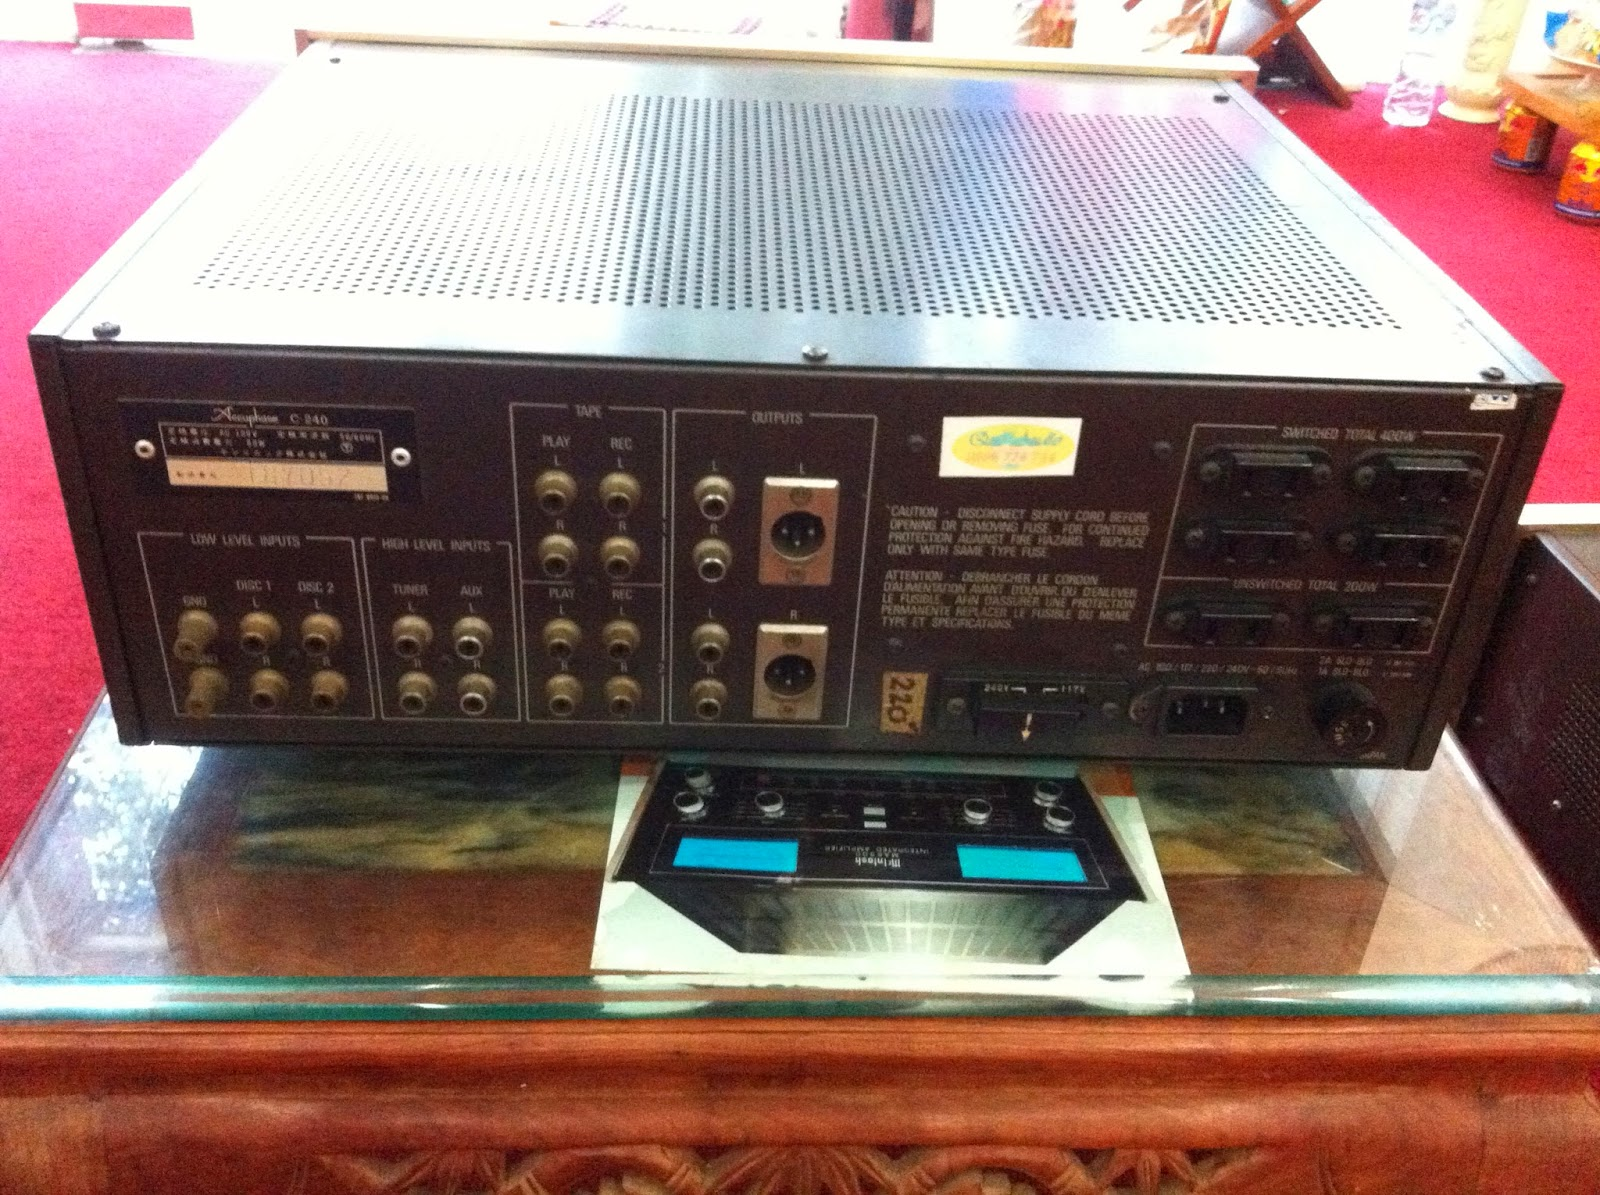 Mặt sau Preamplifier Accuphase C240